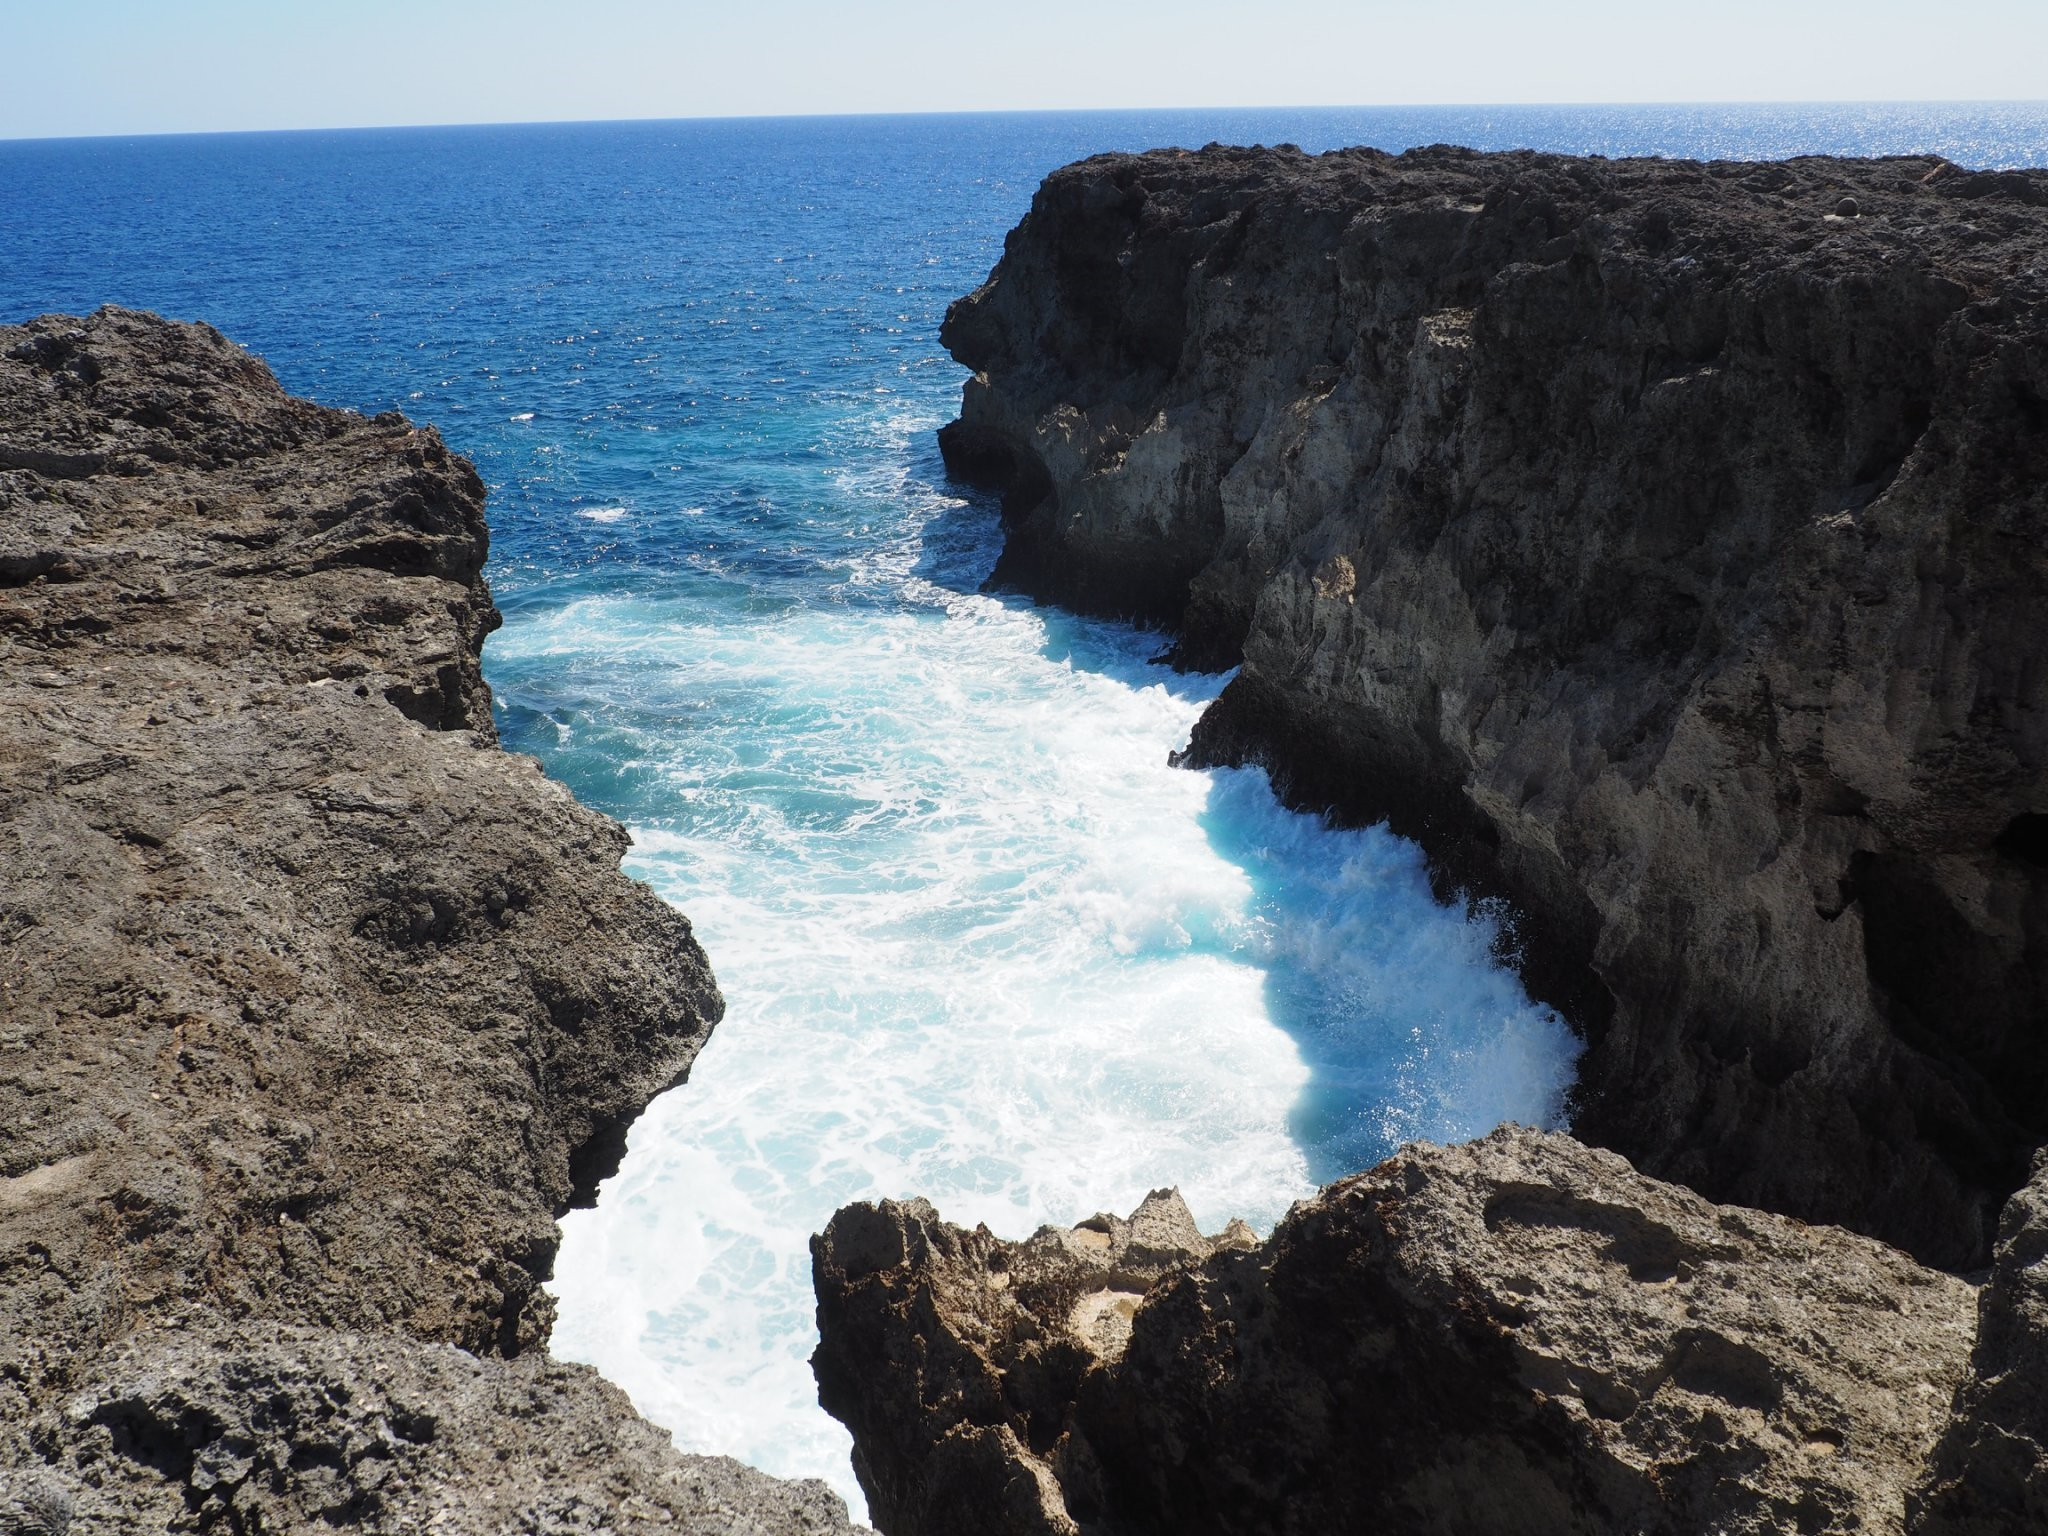 Japan's southernmost point Cape